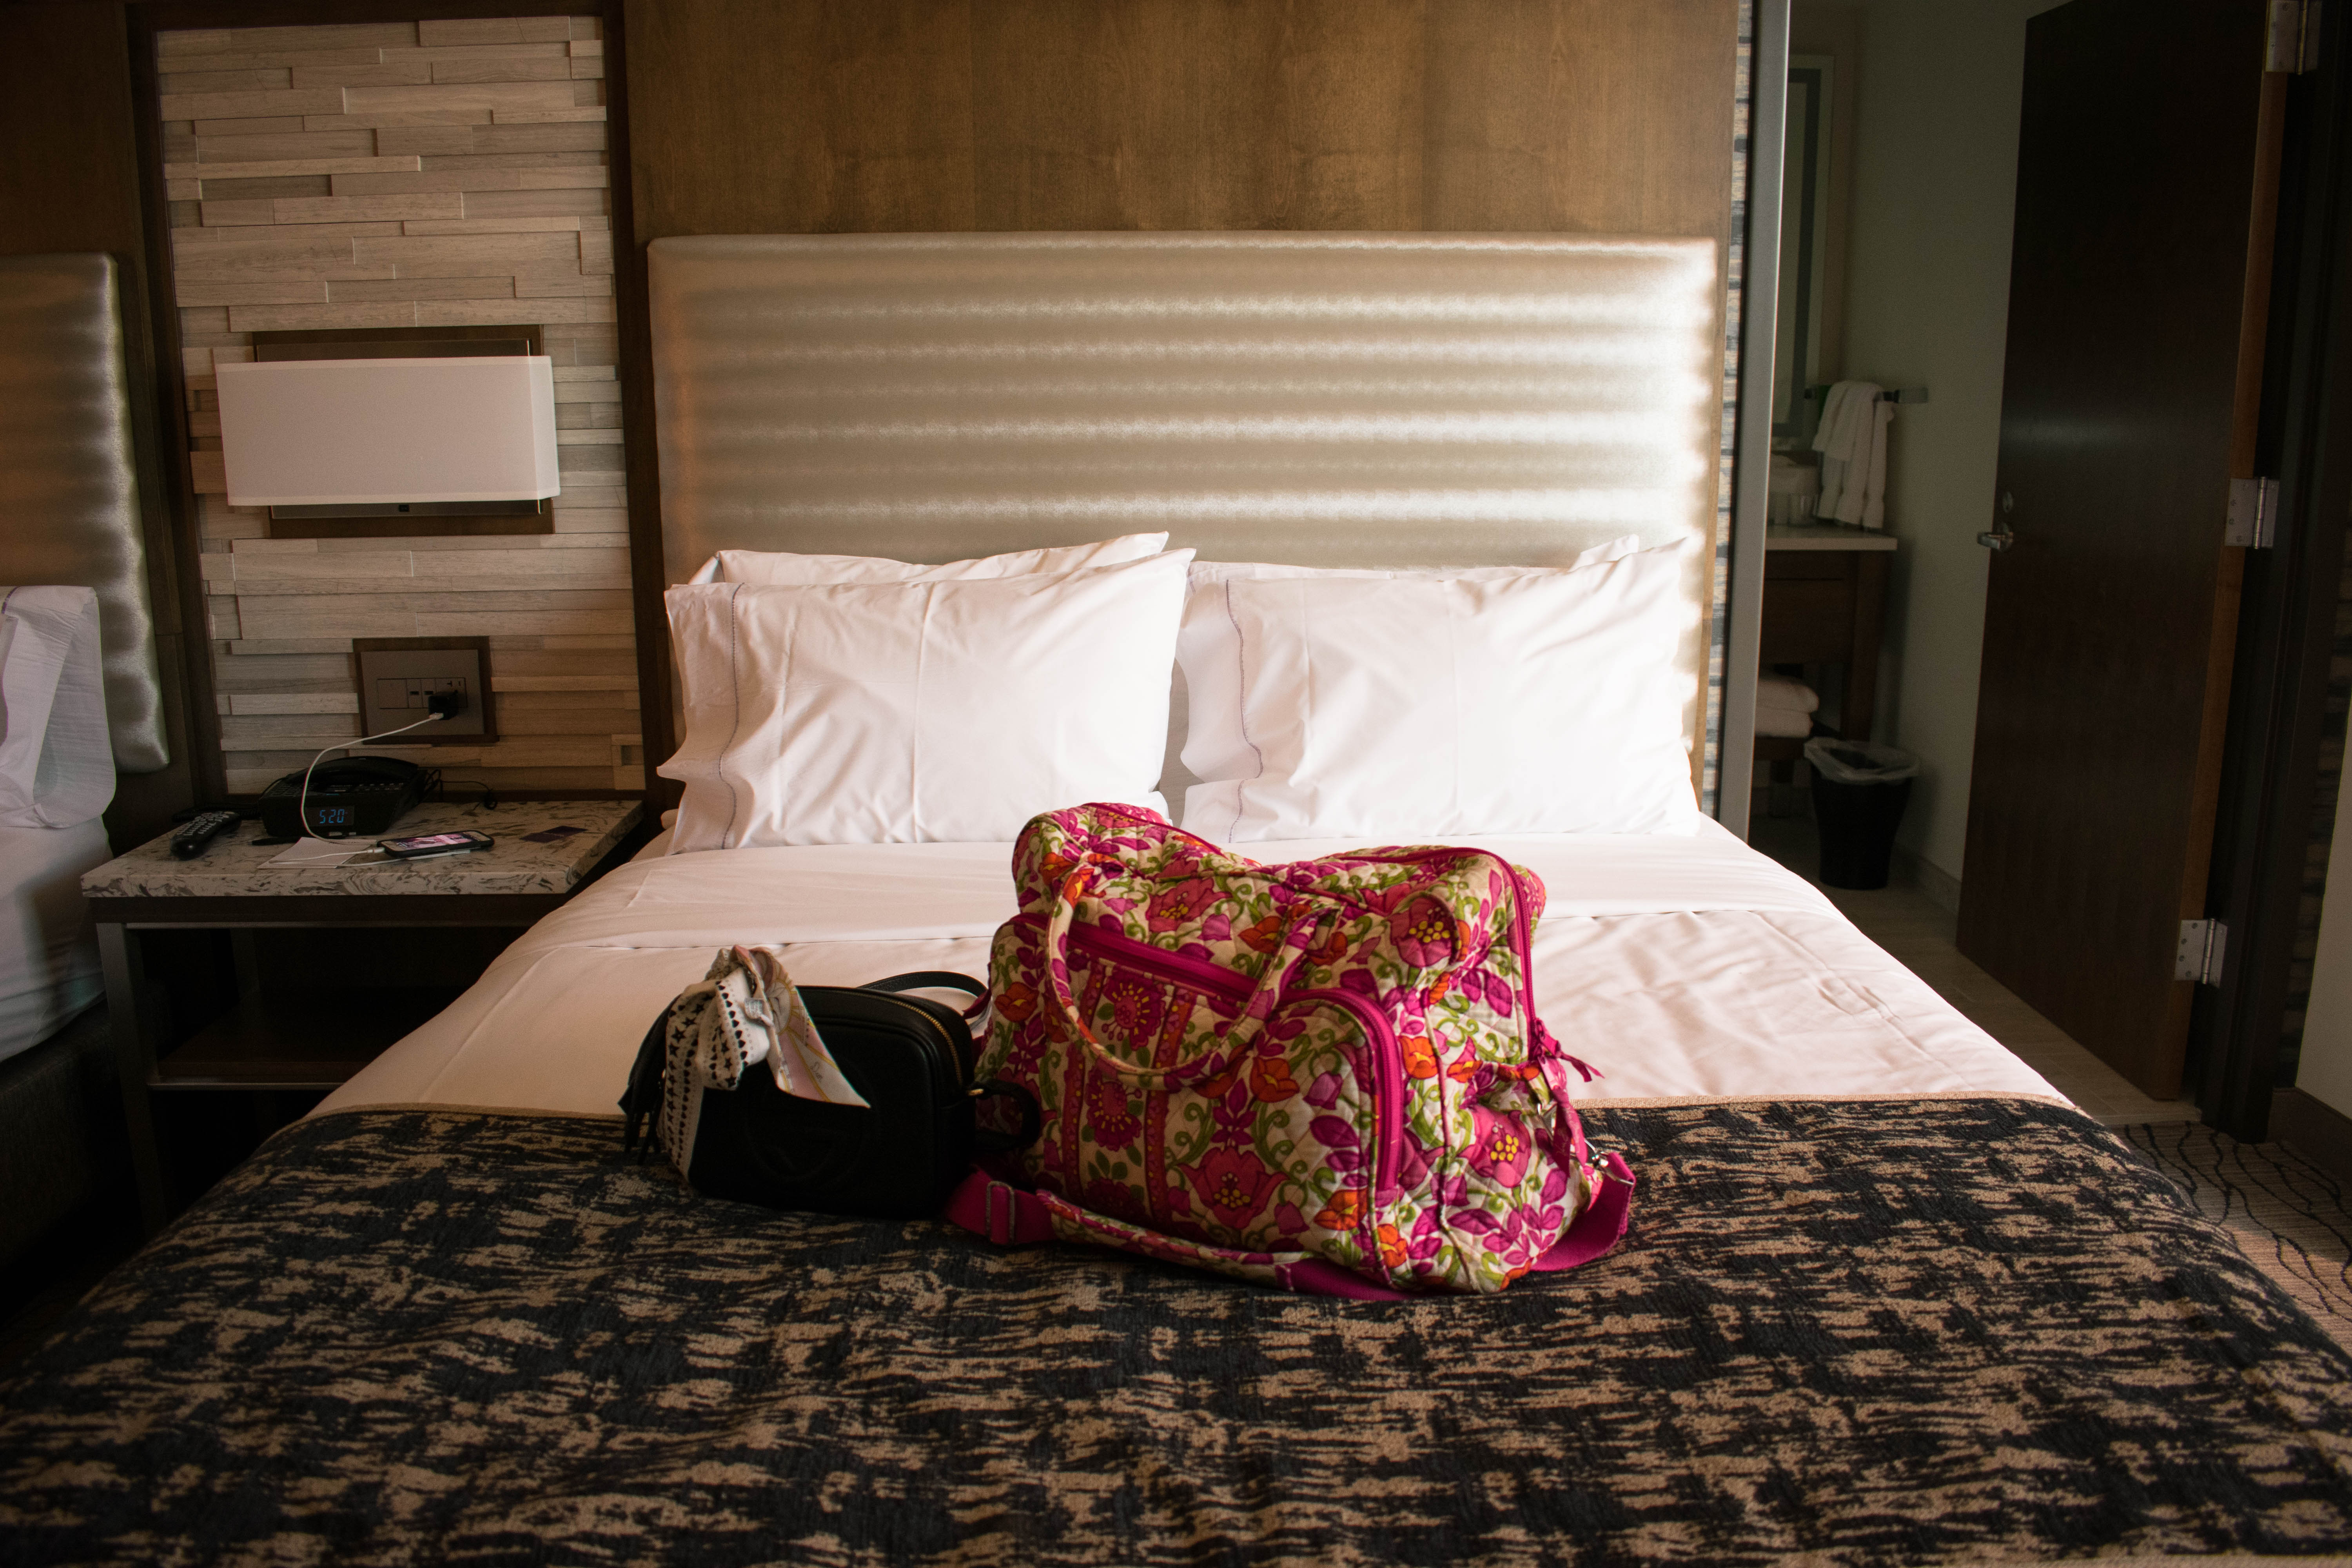 mystic lake casino hotel review luxury hotel in the midwest minnesota america vera bradley weekender duffel bag gucci black soho disco dior tarot twilly